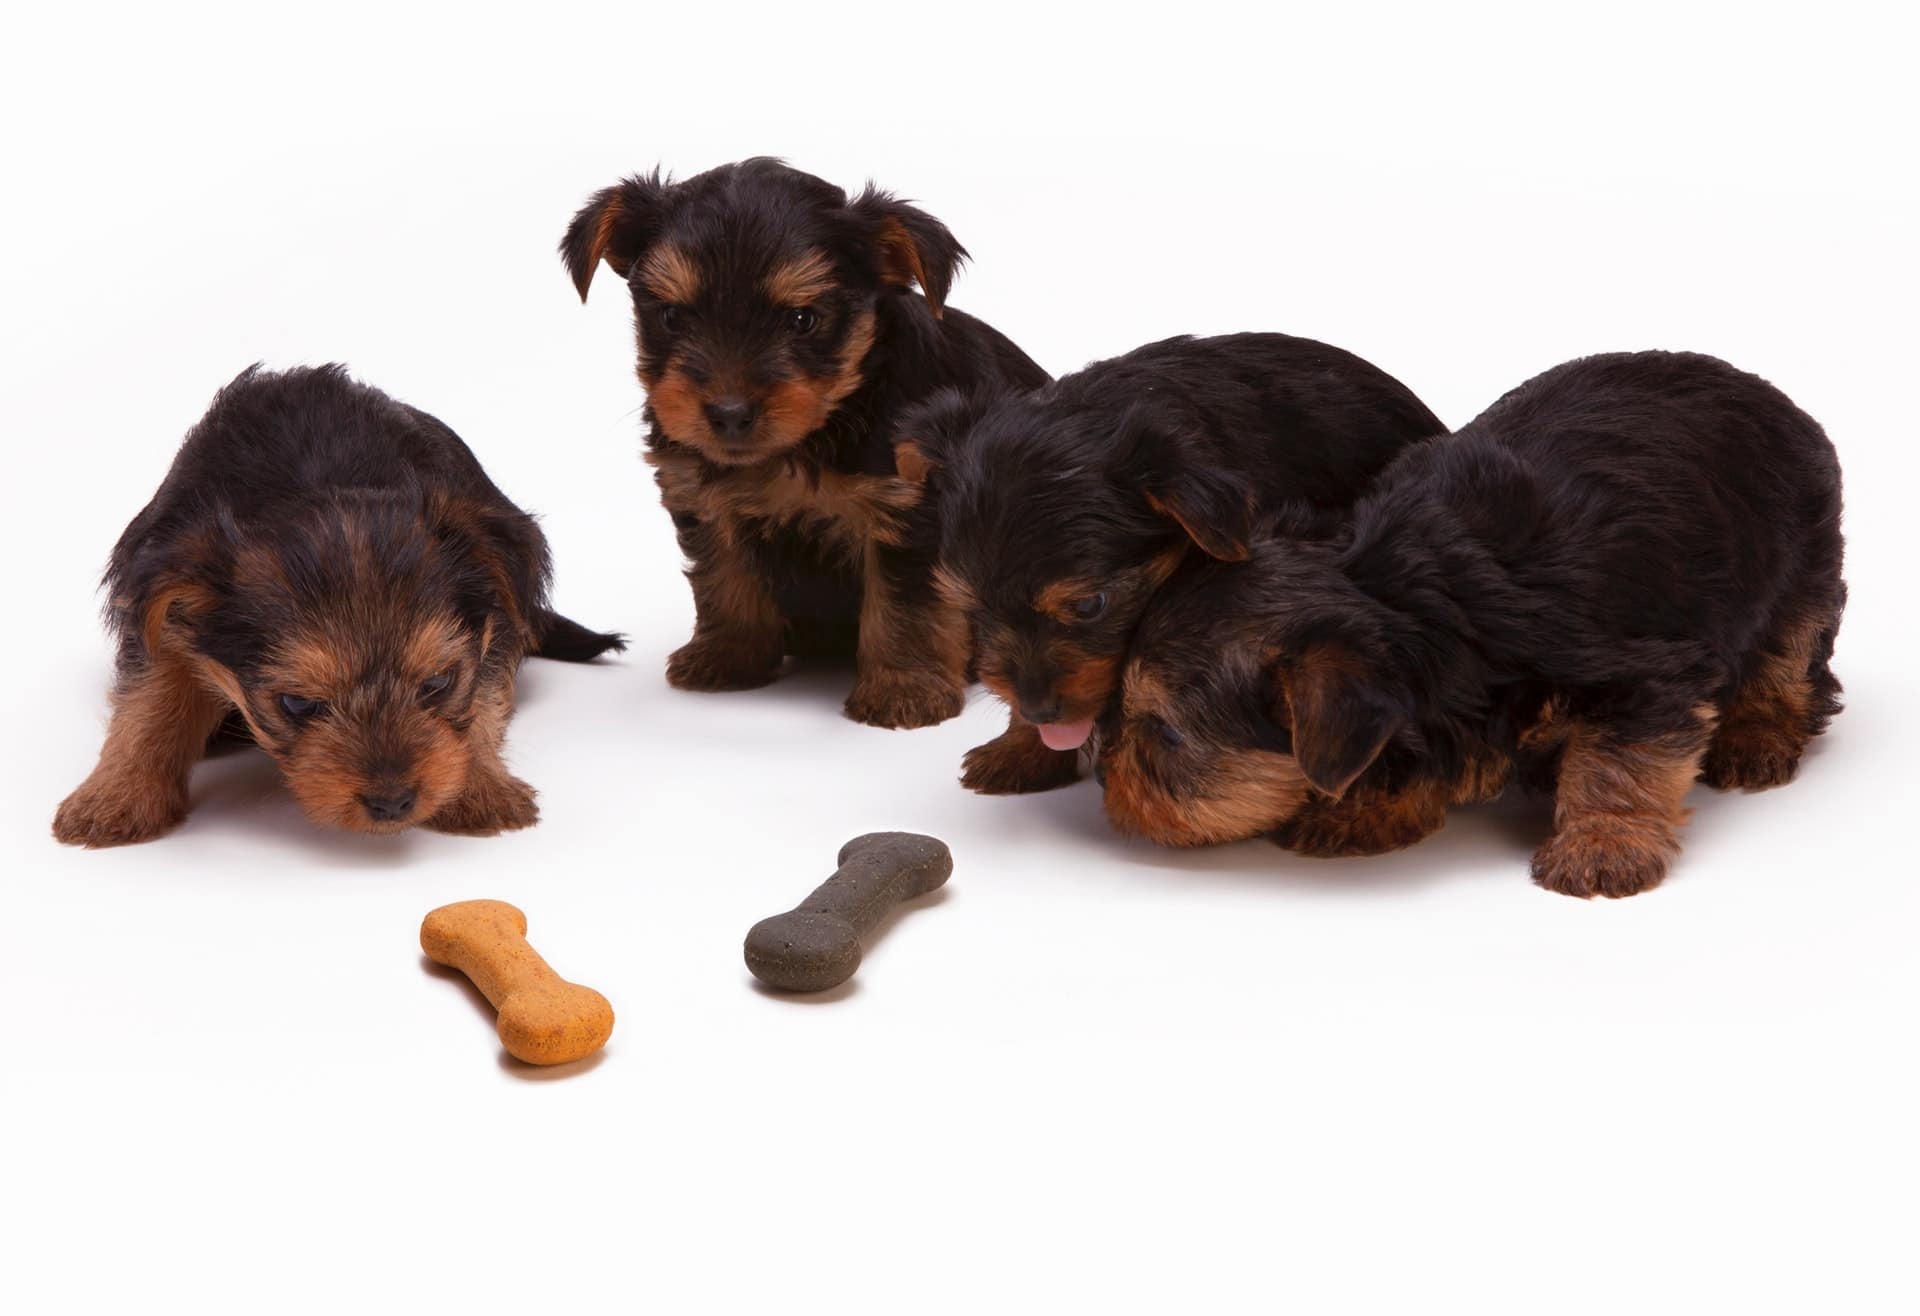 four puppies looking at bone-shaped food